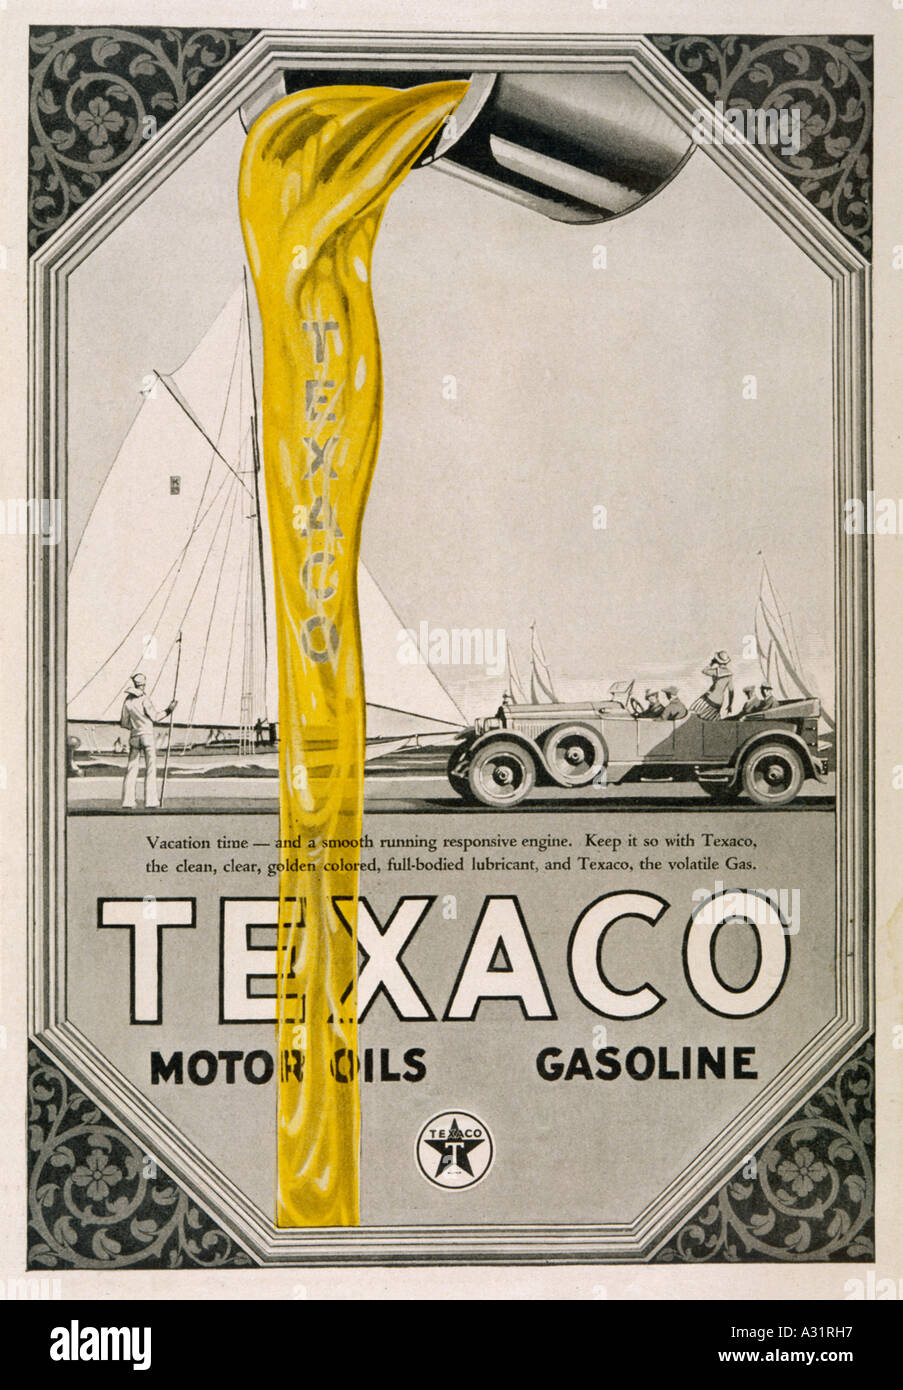 Advert Texaco Motor Oils Stock Photo